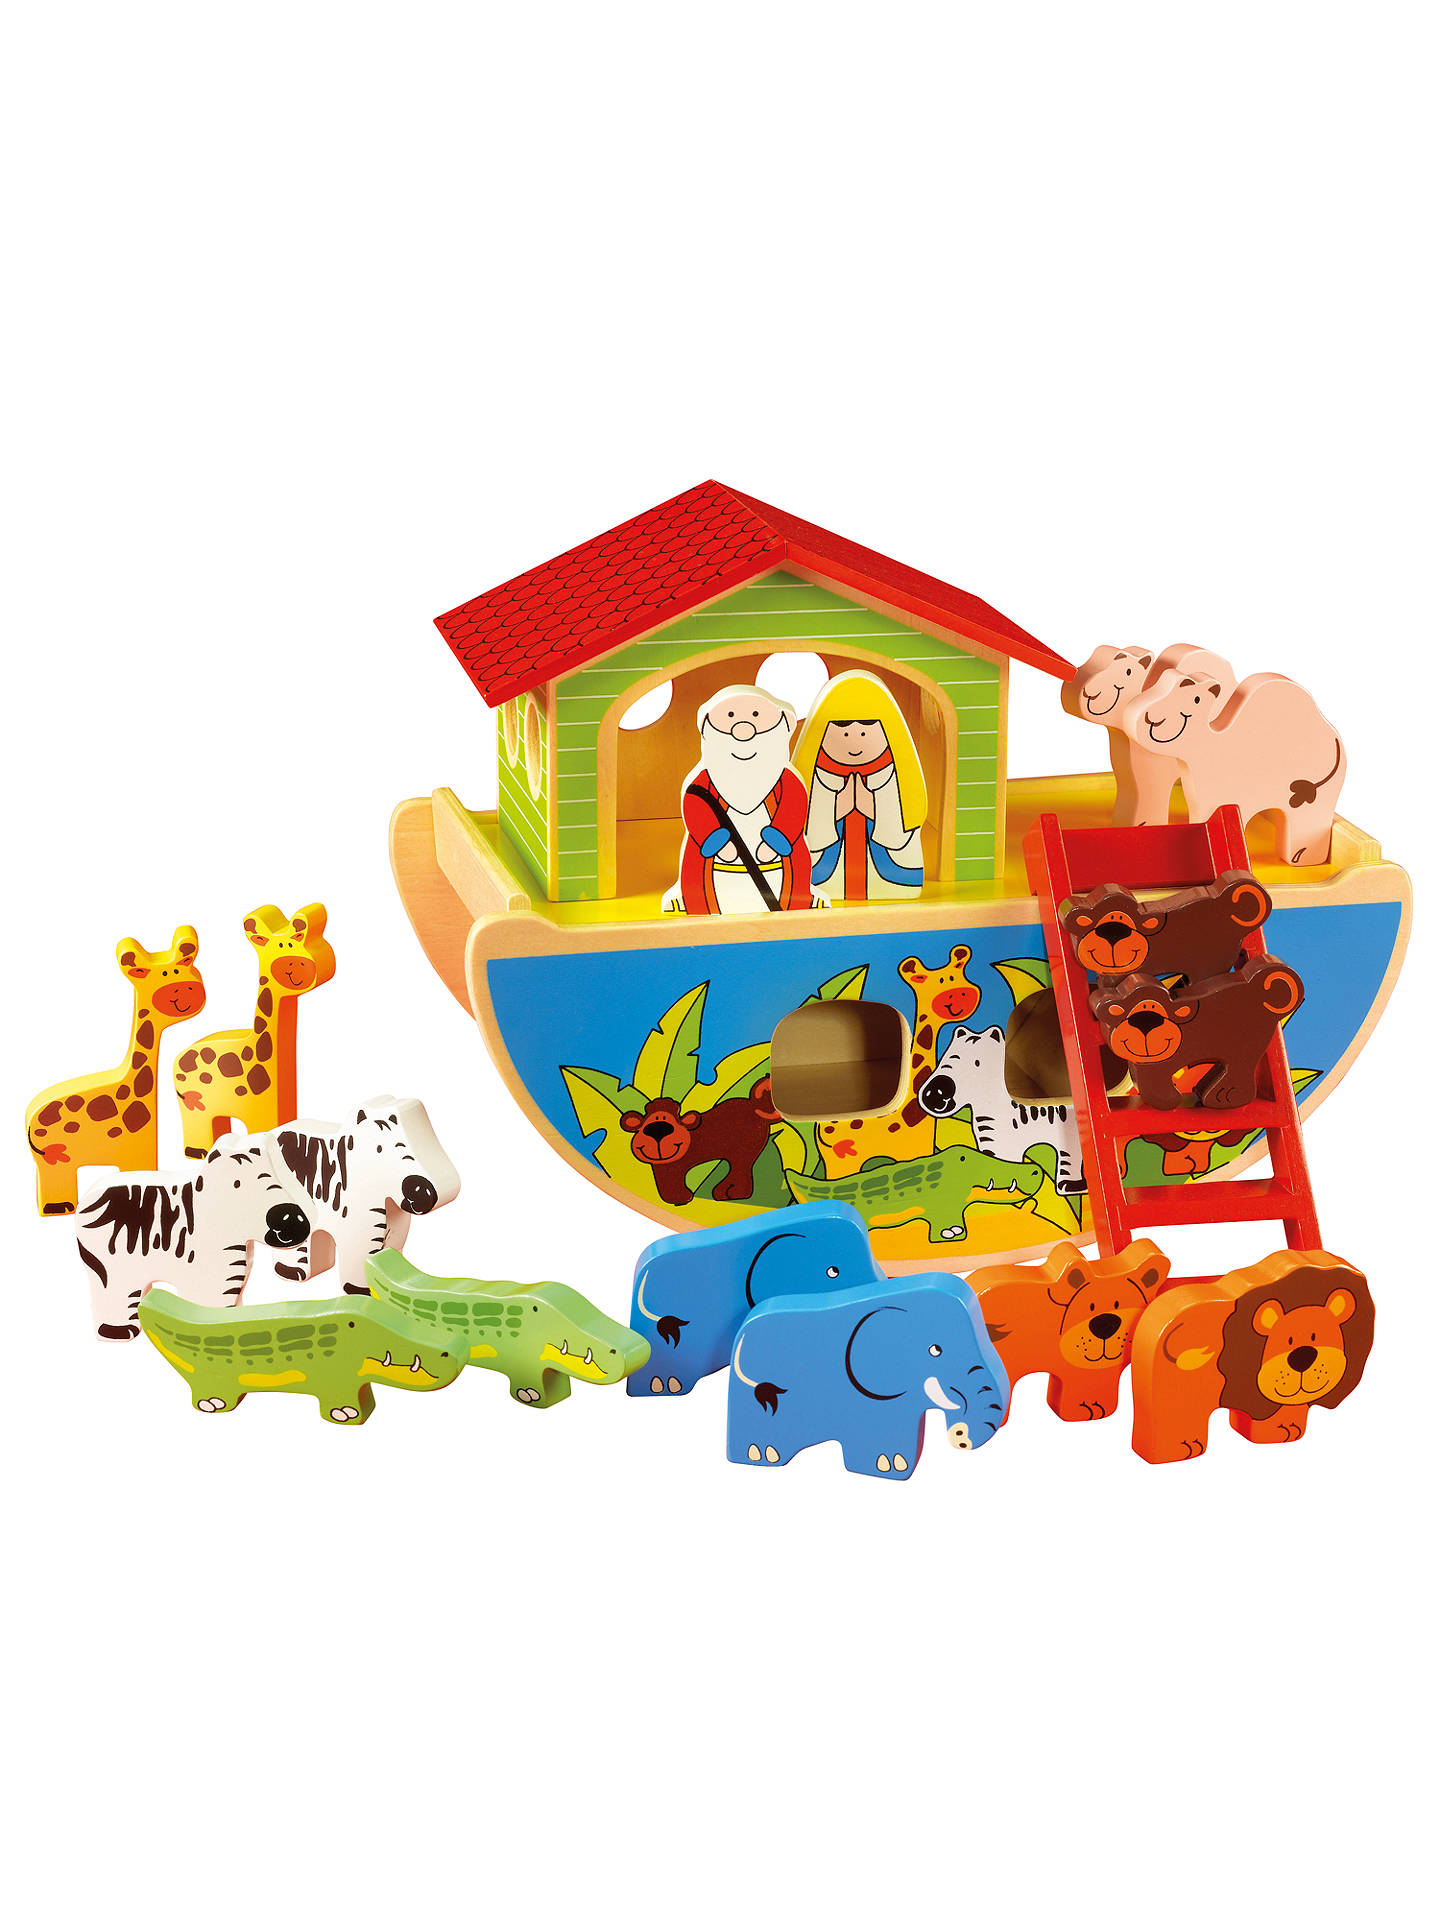 Buy John Lewis & Partners Wooden Noah's Ark Set Online at johnlewis.com